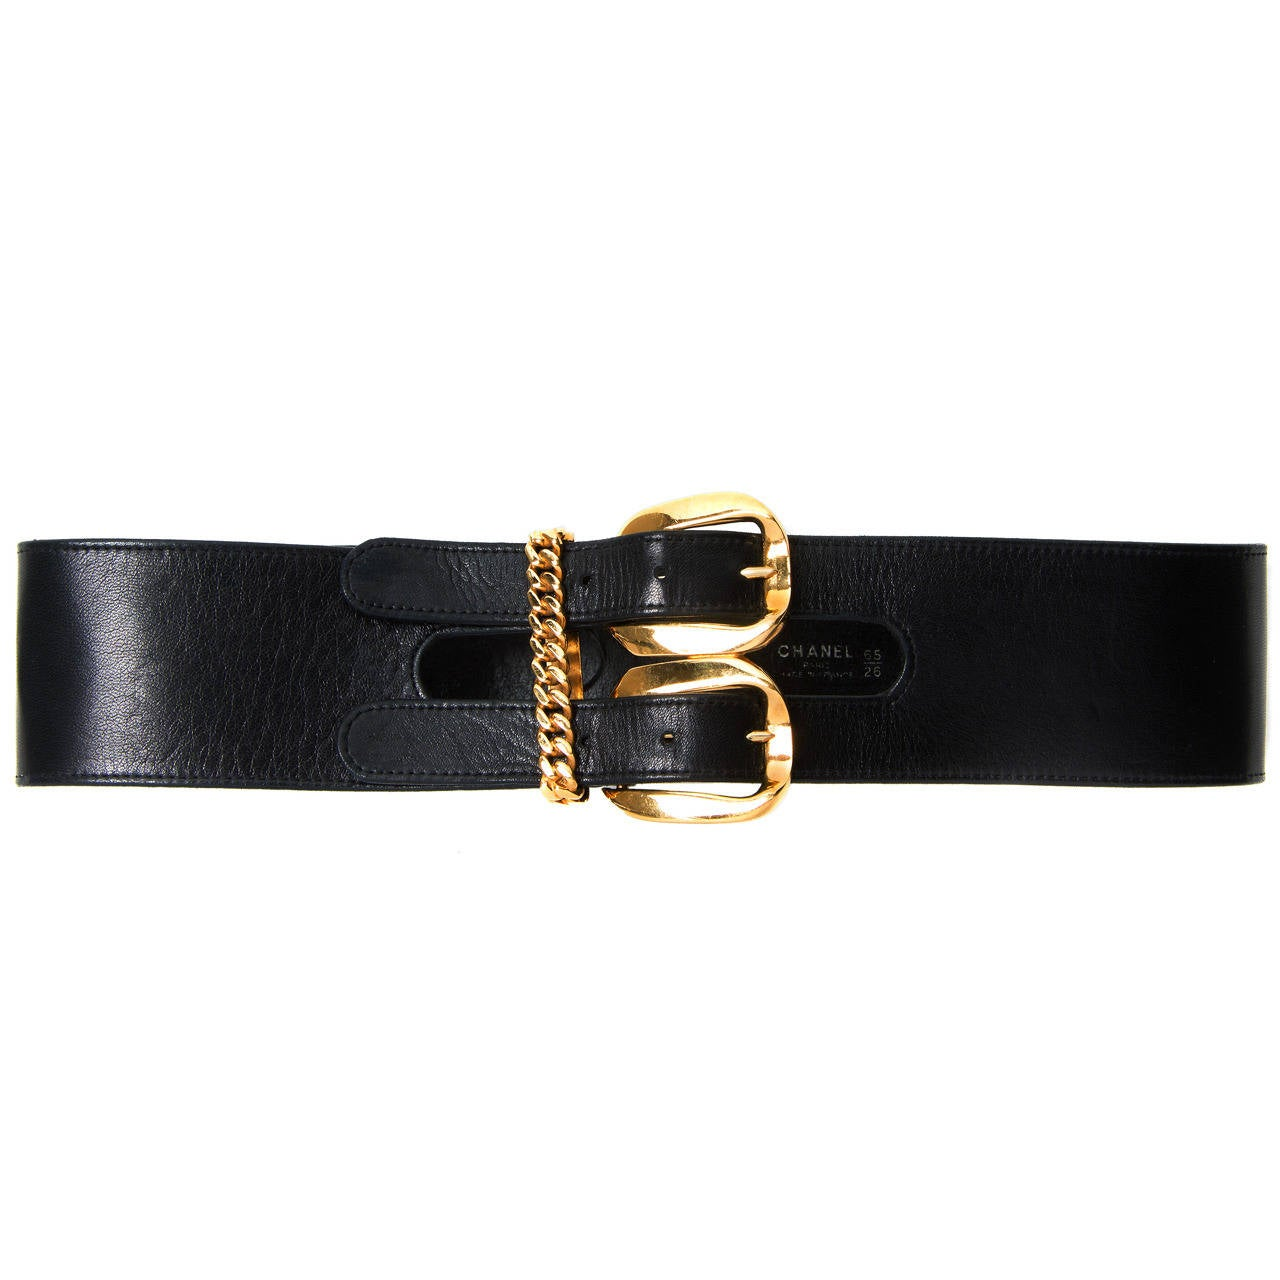 1990's Chanel Black Leather & Gold Hardware Double-Buckle Wide Waist Belt 1